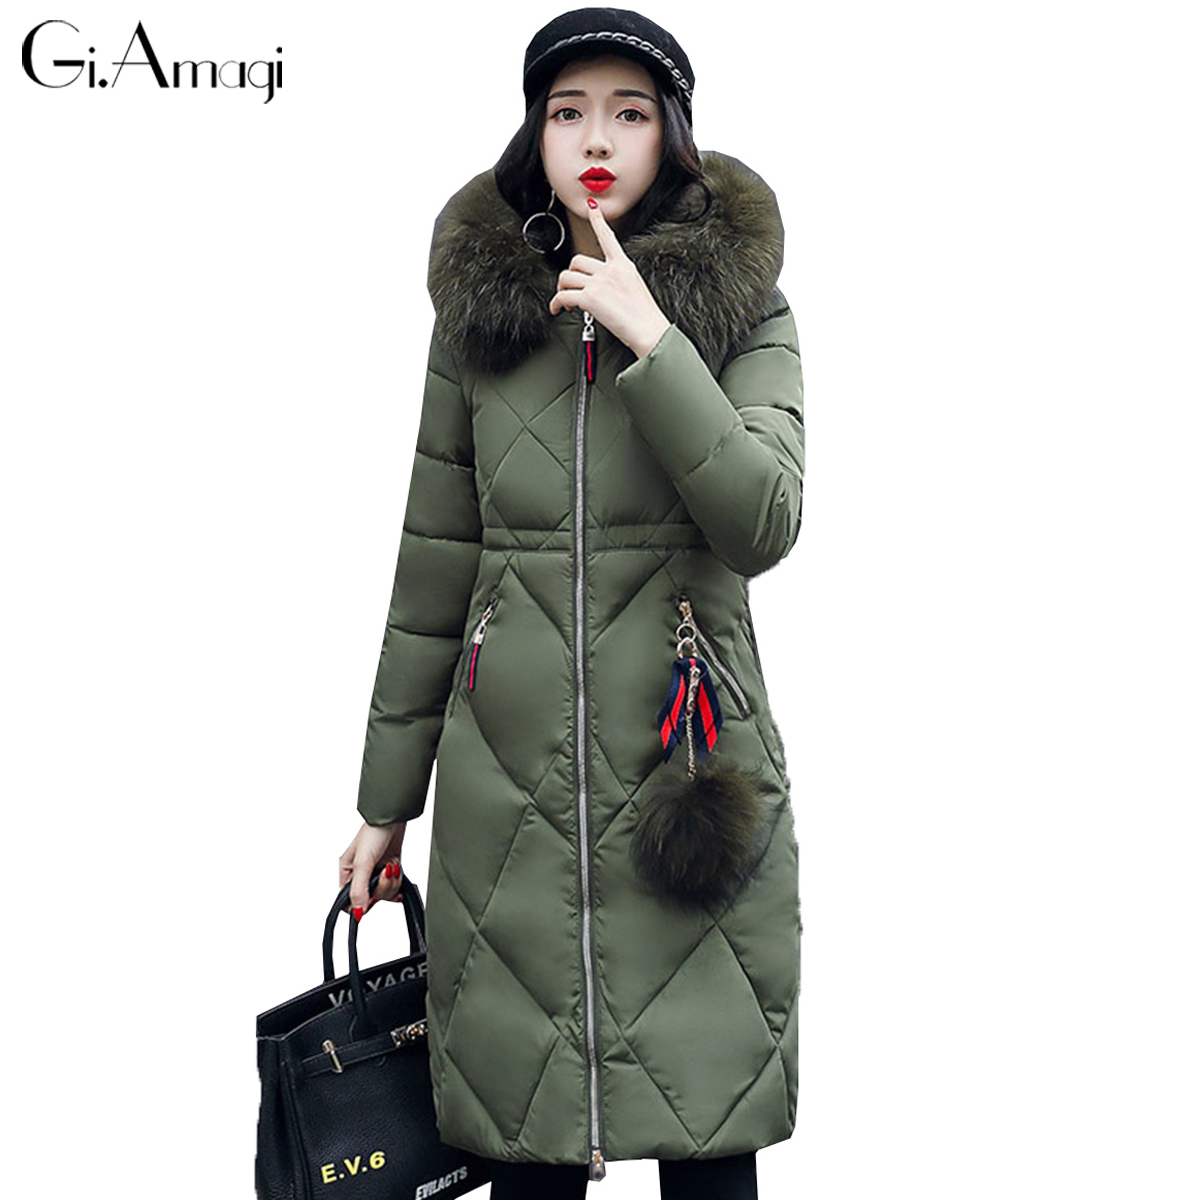 Large Fur Collar Winter Jacket Women 2017 New Long Hooded Parka Coat Women Cotton-padded Thicken Warm Jacket Female Plus Size 2017 new winter jacket women parka large fur collar hooded thicken coat slim medium long cotton padded big pocket warm parkas